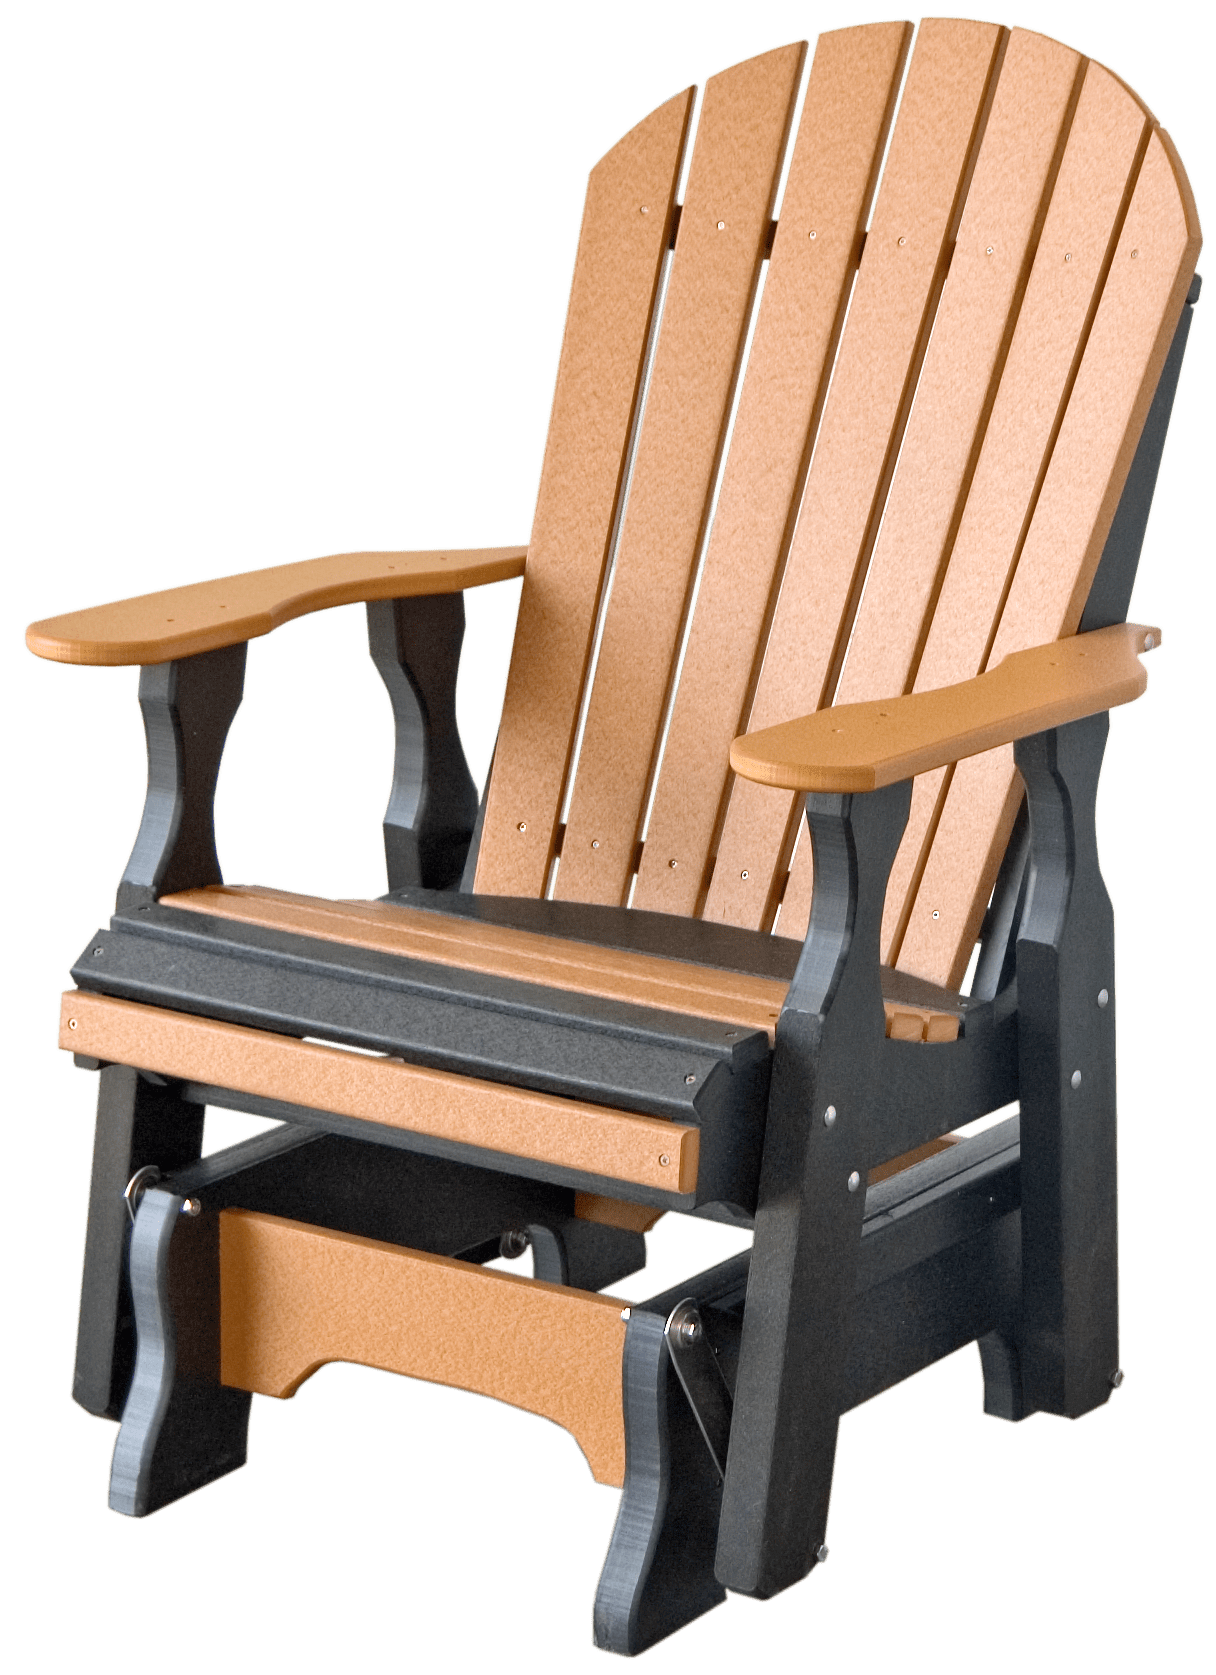 Glider Patio Chairs Outdoor Patio Furniture Pine Creek Structures